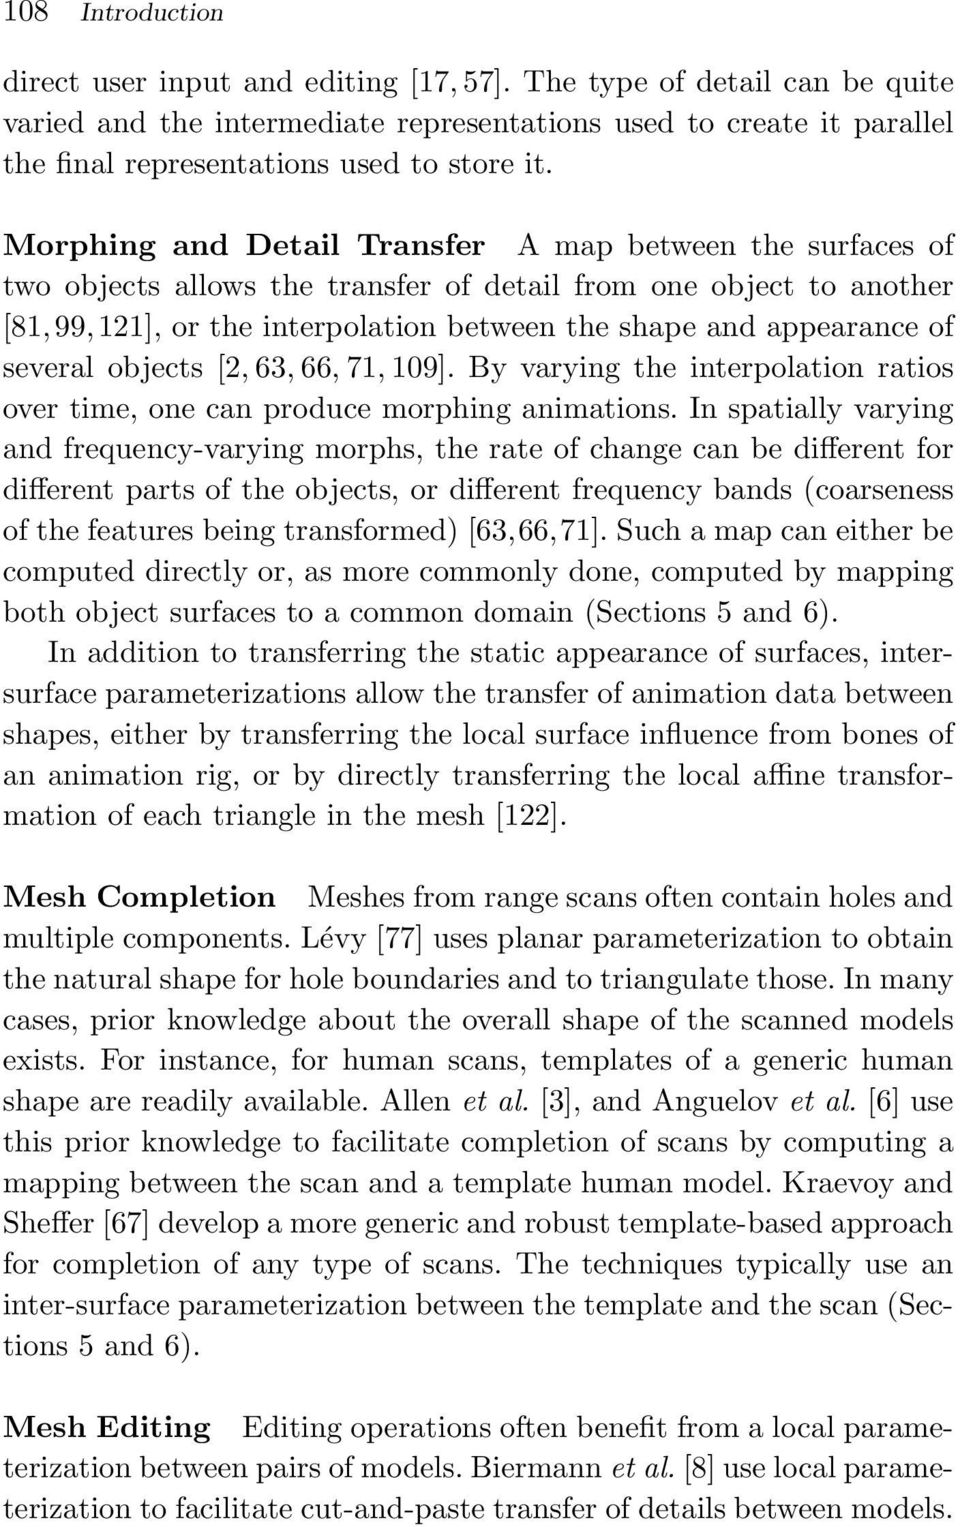 They compute an overlapping planar parameterization of the regions near the composition boundary on the input models and use it to extract and smoothly blend shape information from the two models.